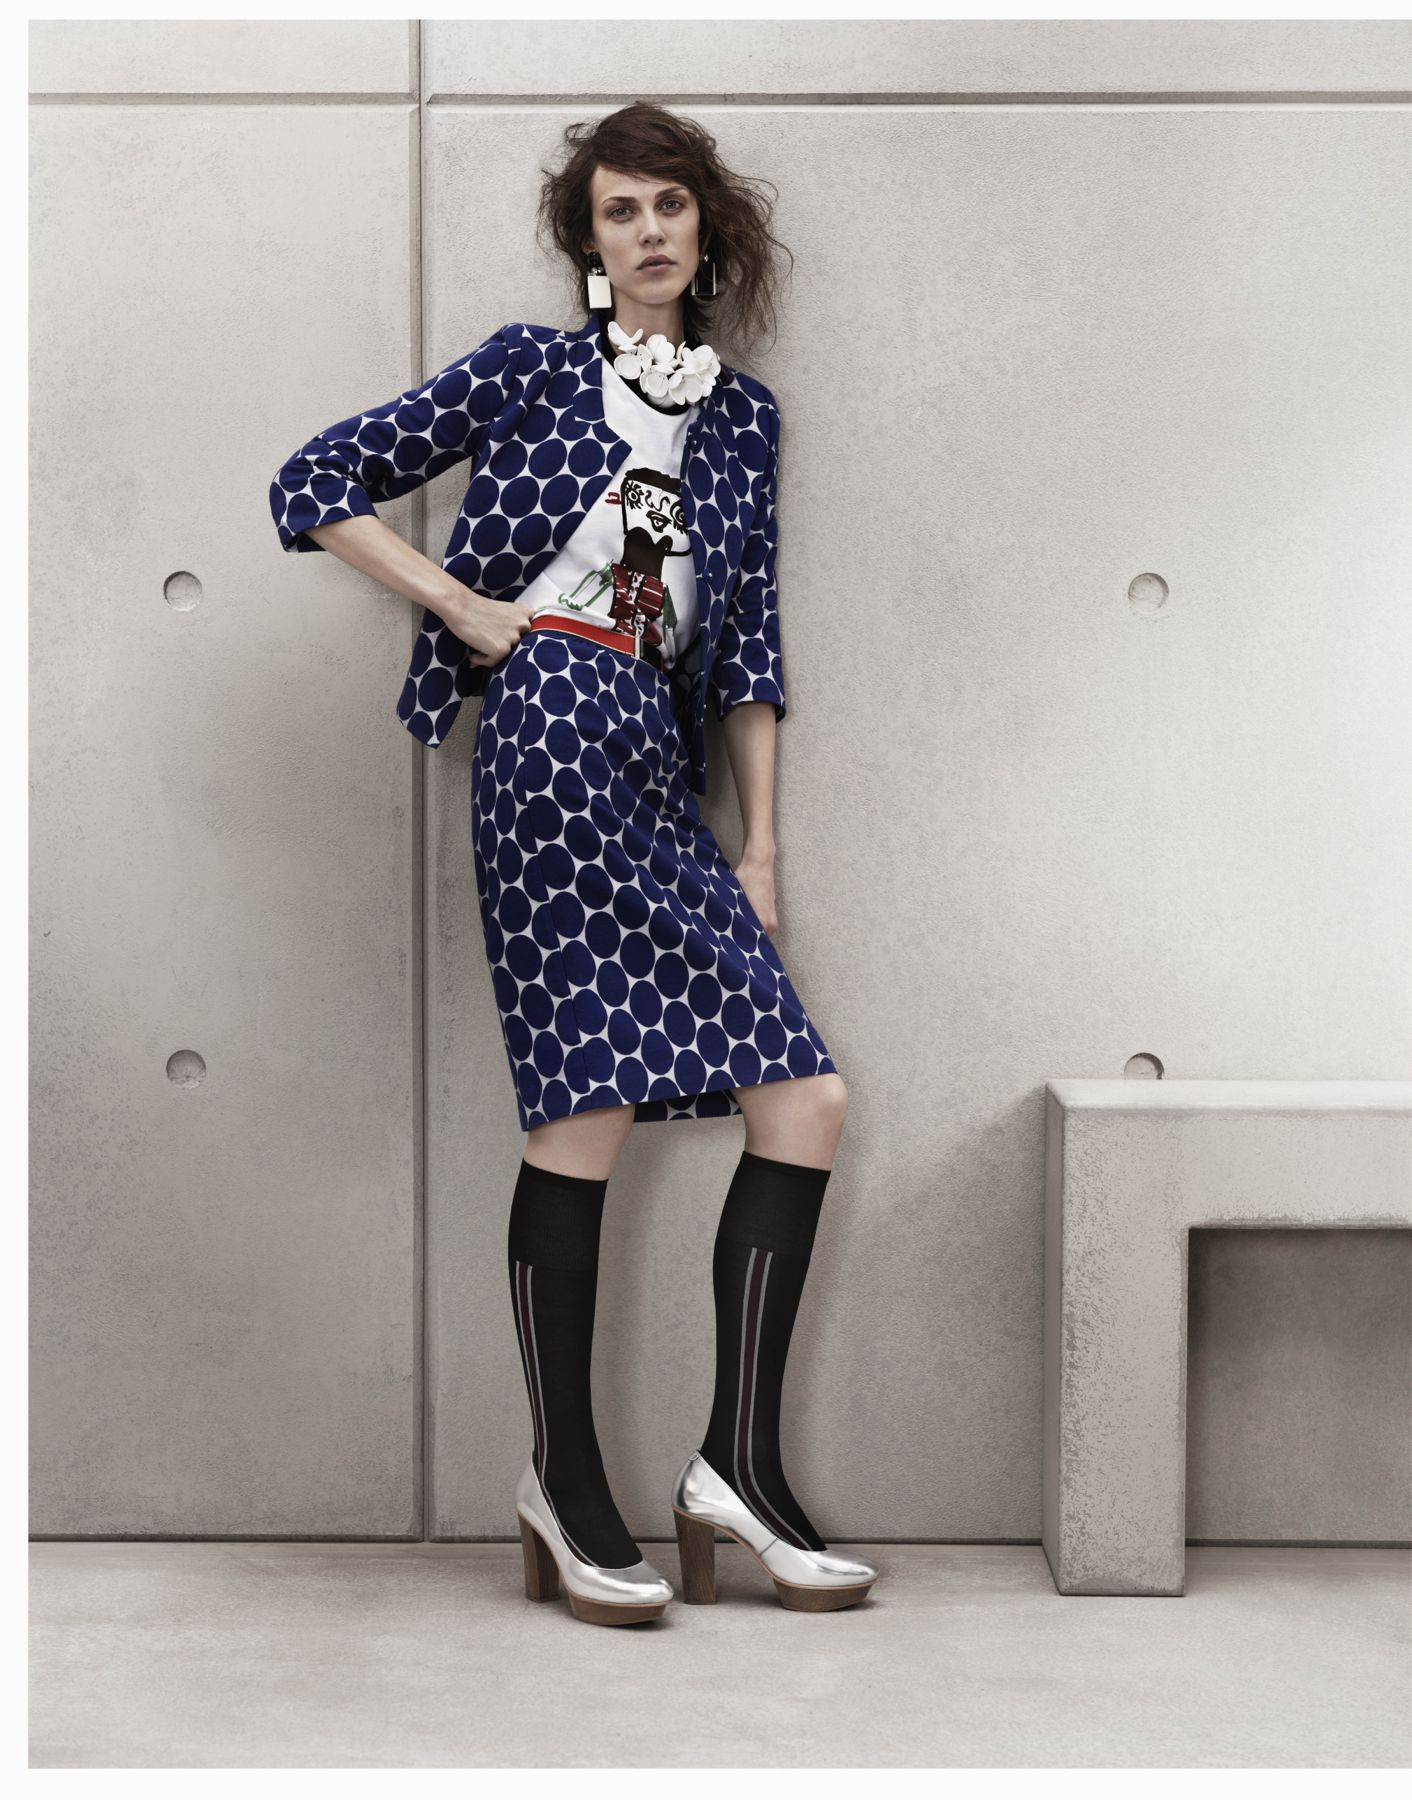 Marni for H&M 2012